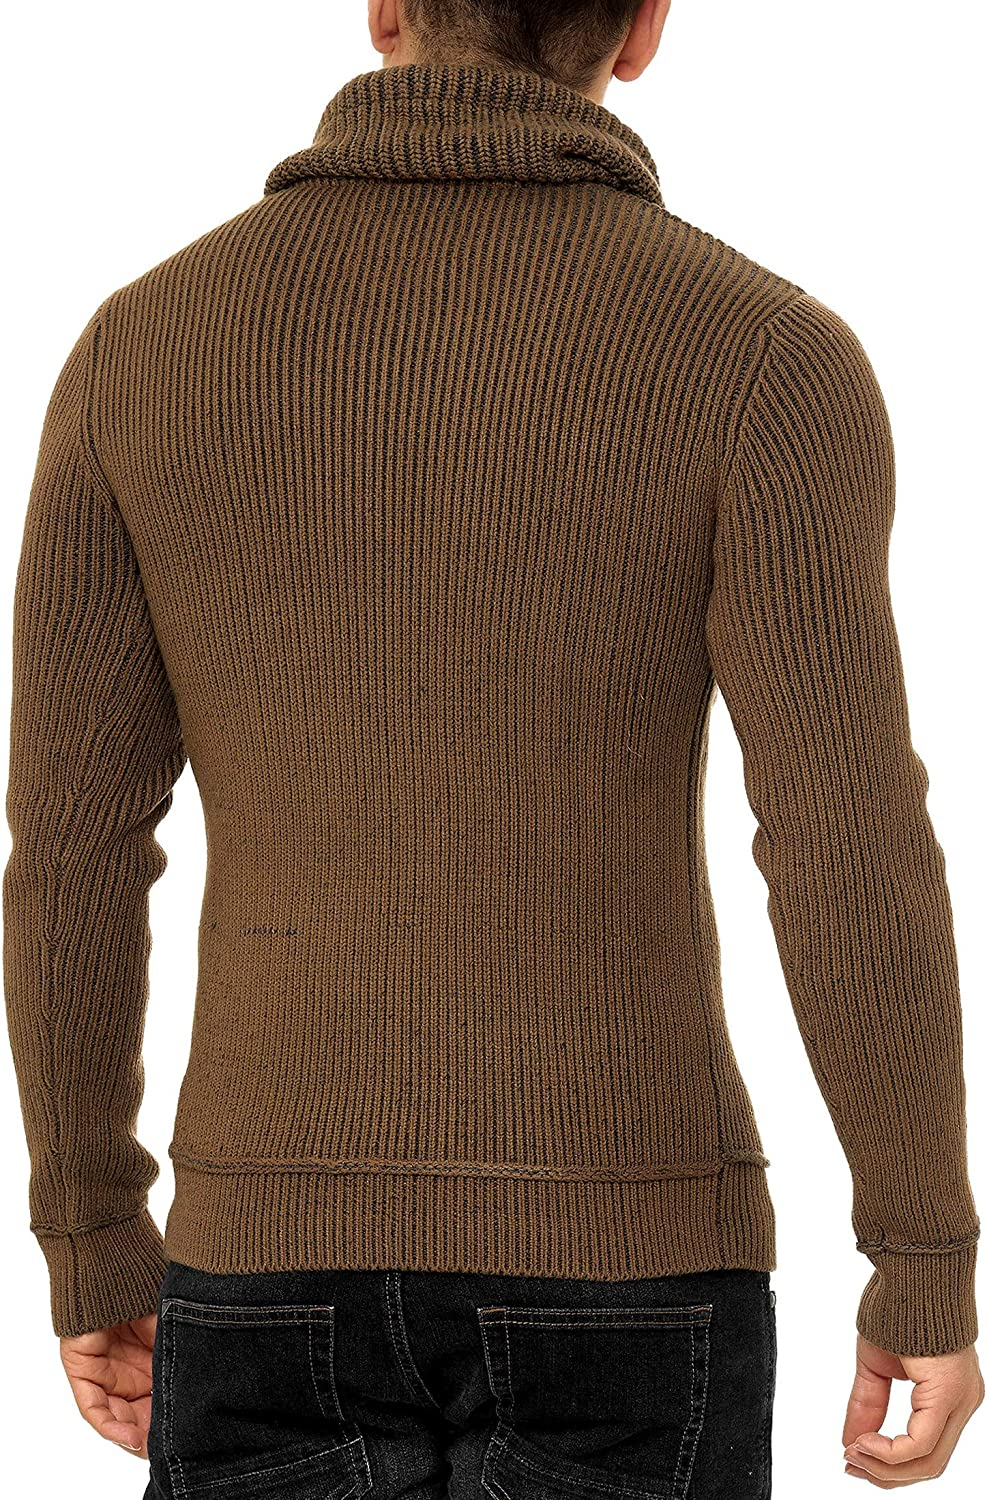 Indicode Homme Keshawn Pull D/'Hiver /À Grosse Maille avec Col Montant Chaud Pull pour Homme Moderne Pull /À Message Hoddie Pull Confortable Pull en Maille Pull en Maille pour Homme